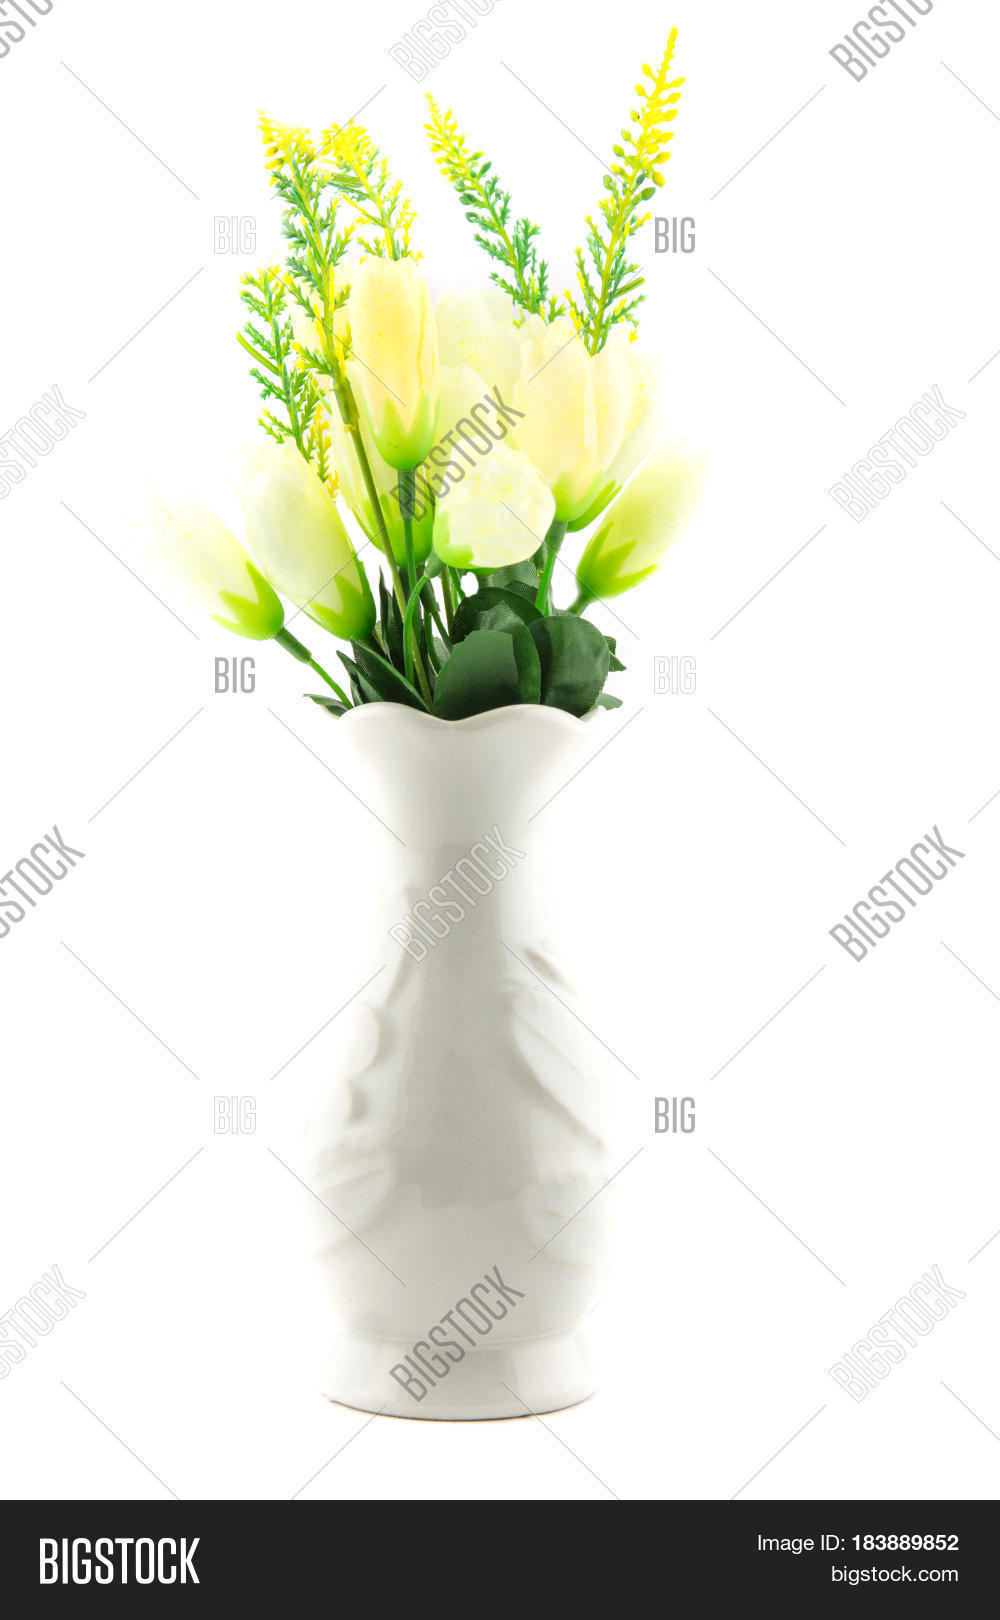 Fake flowers interior decoration image photo bigstock for Artificial plants for interior decoration